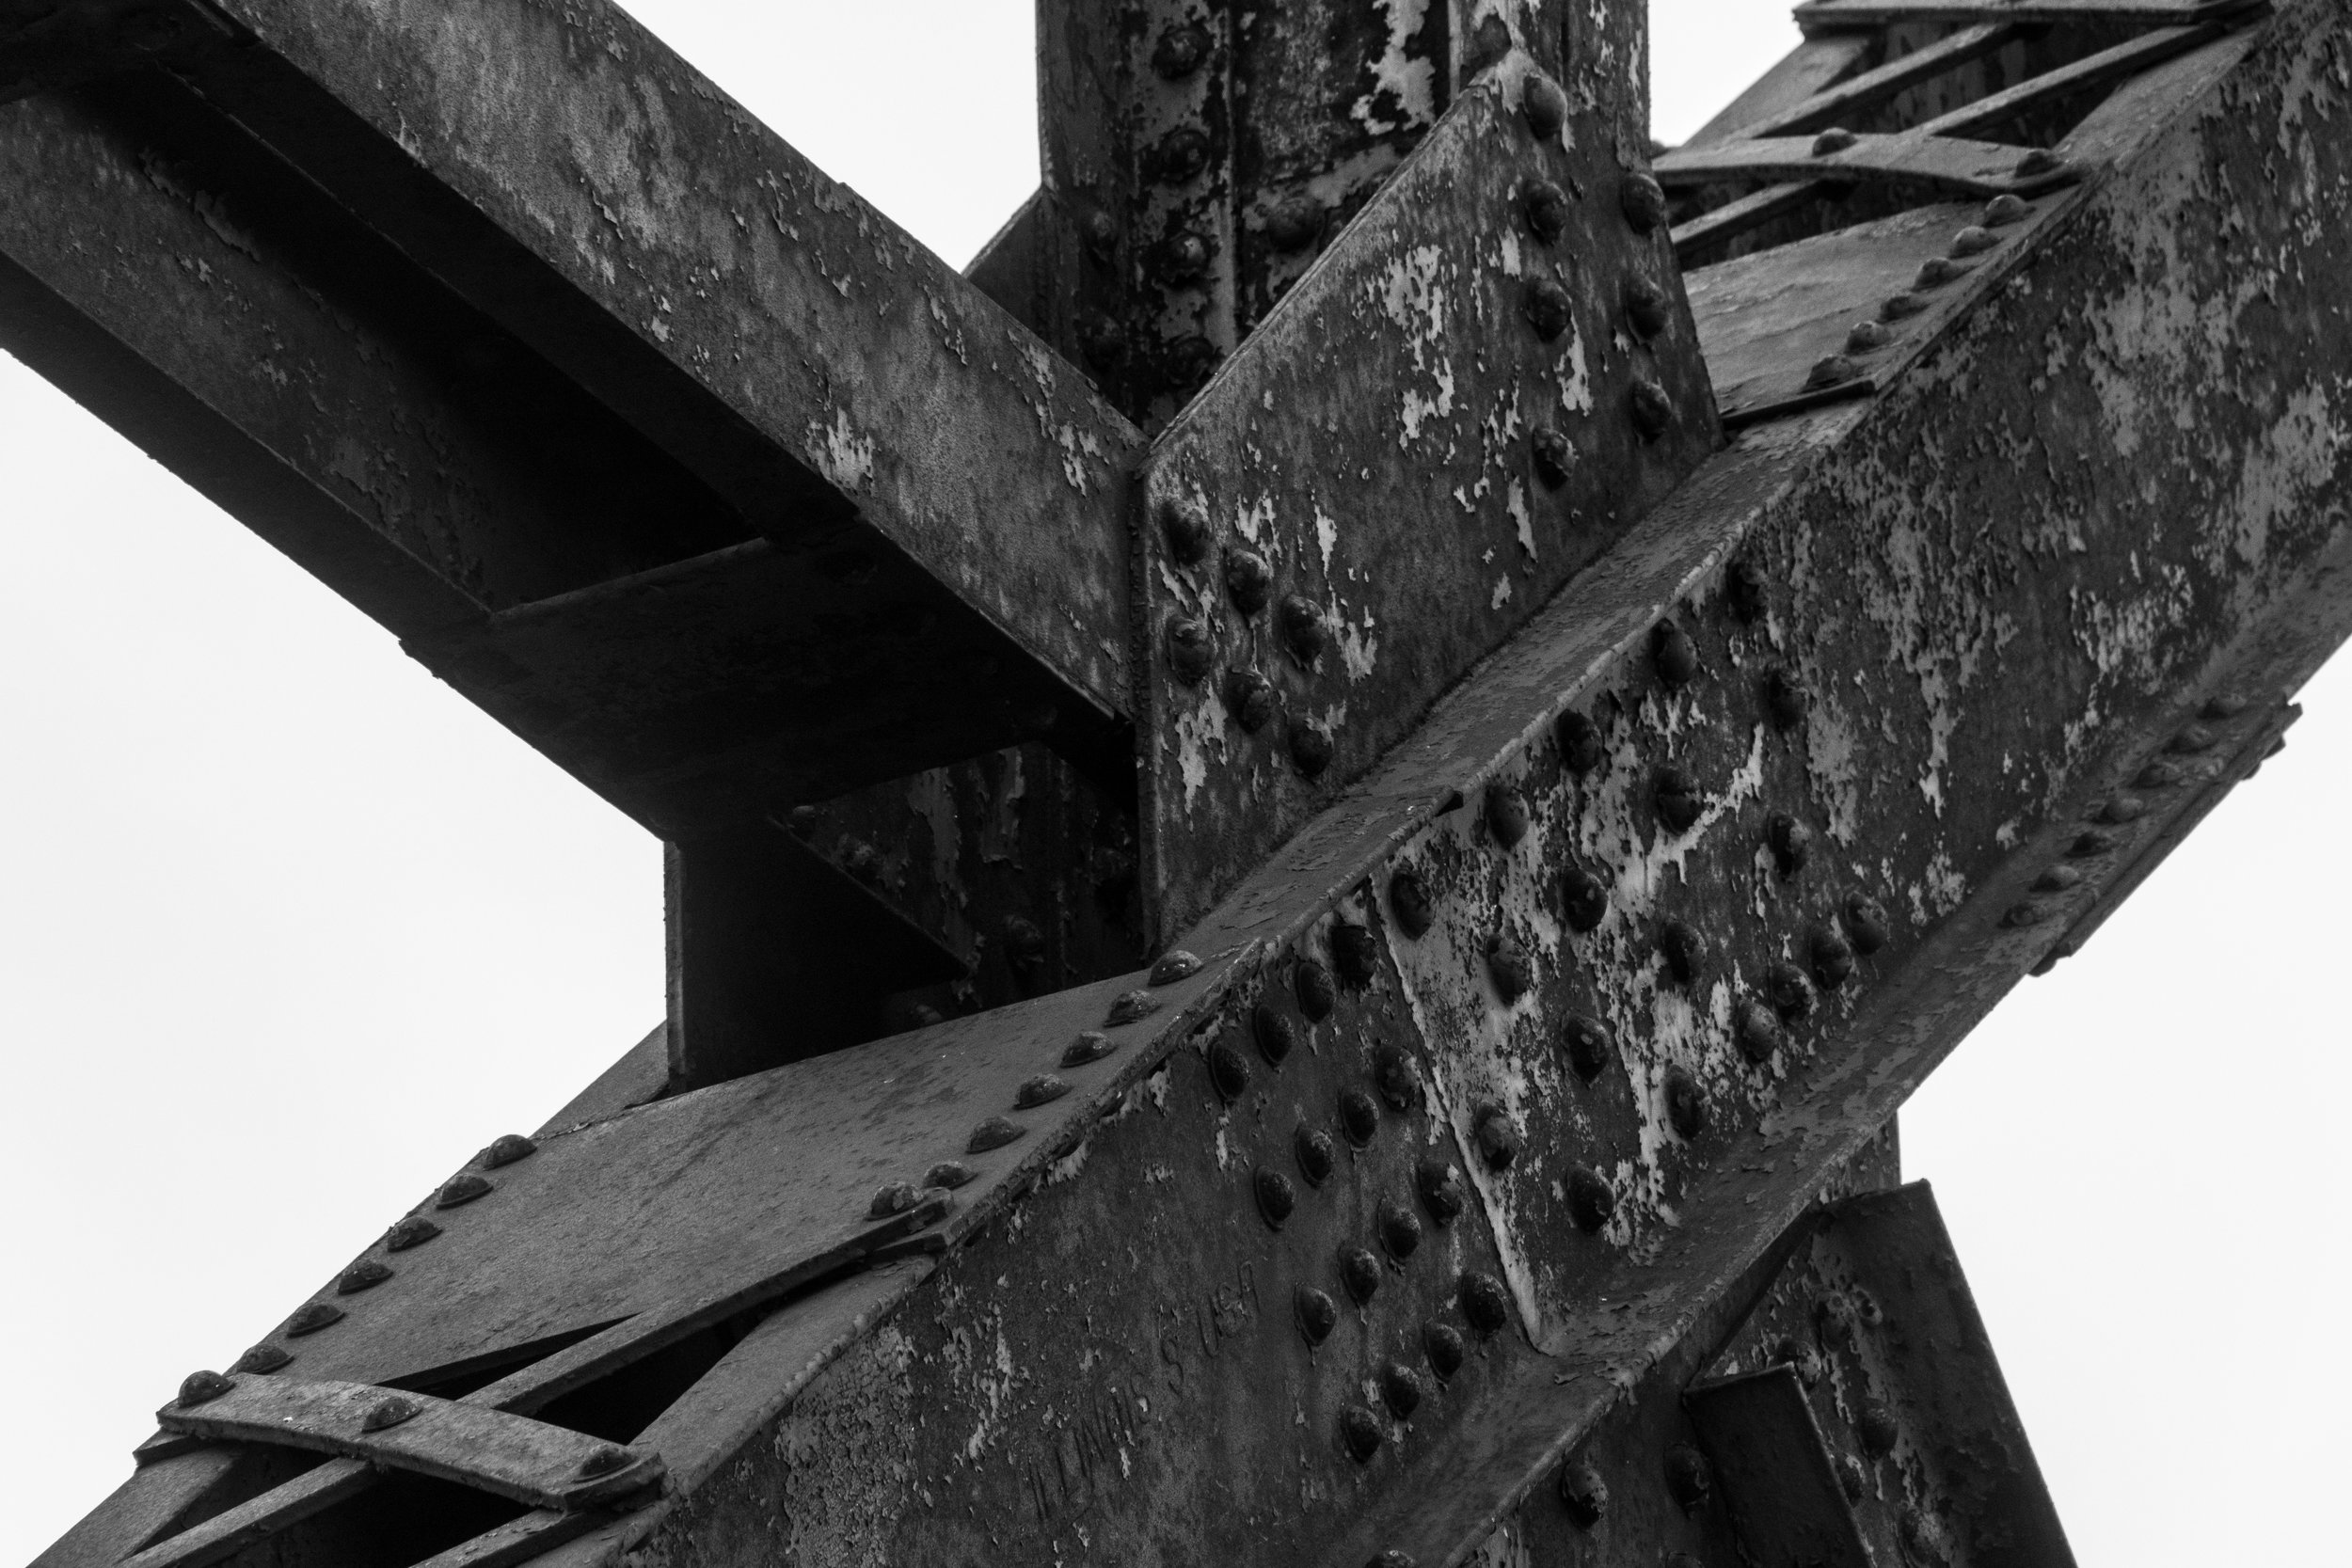 bridge-supports